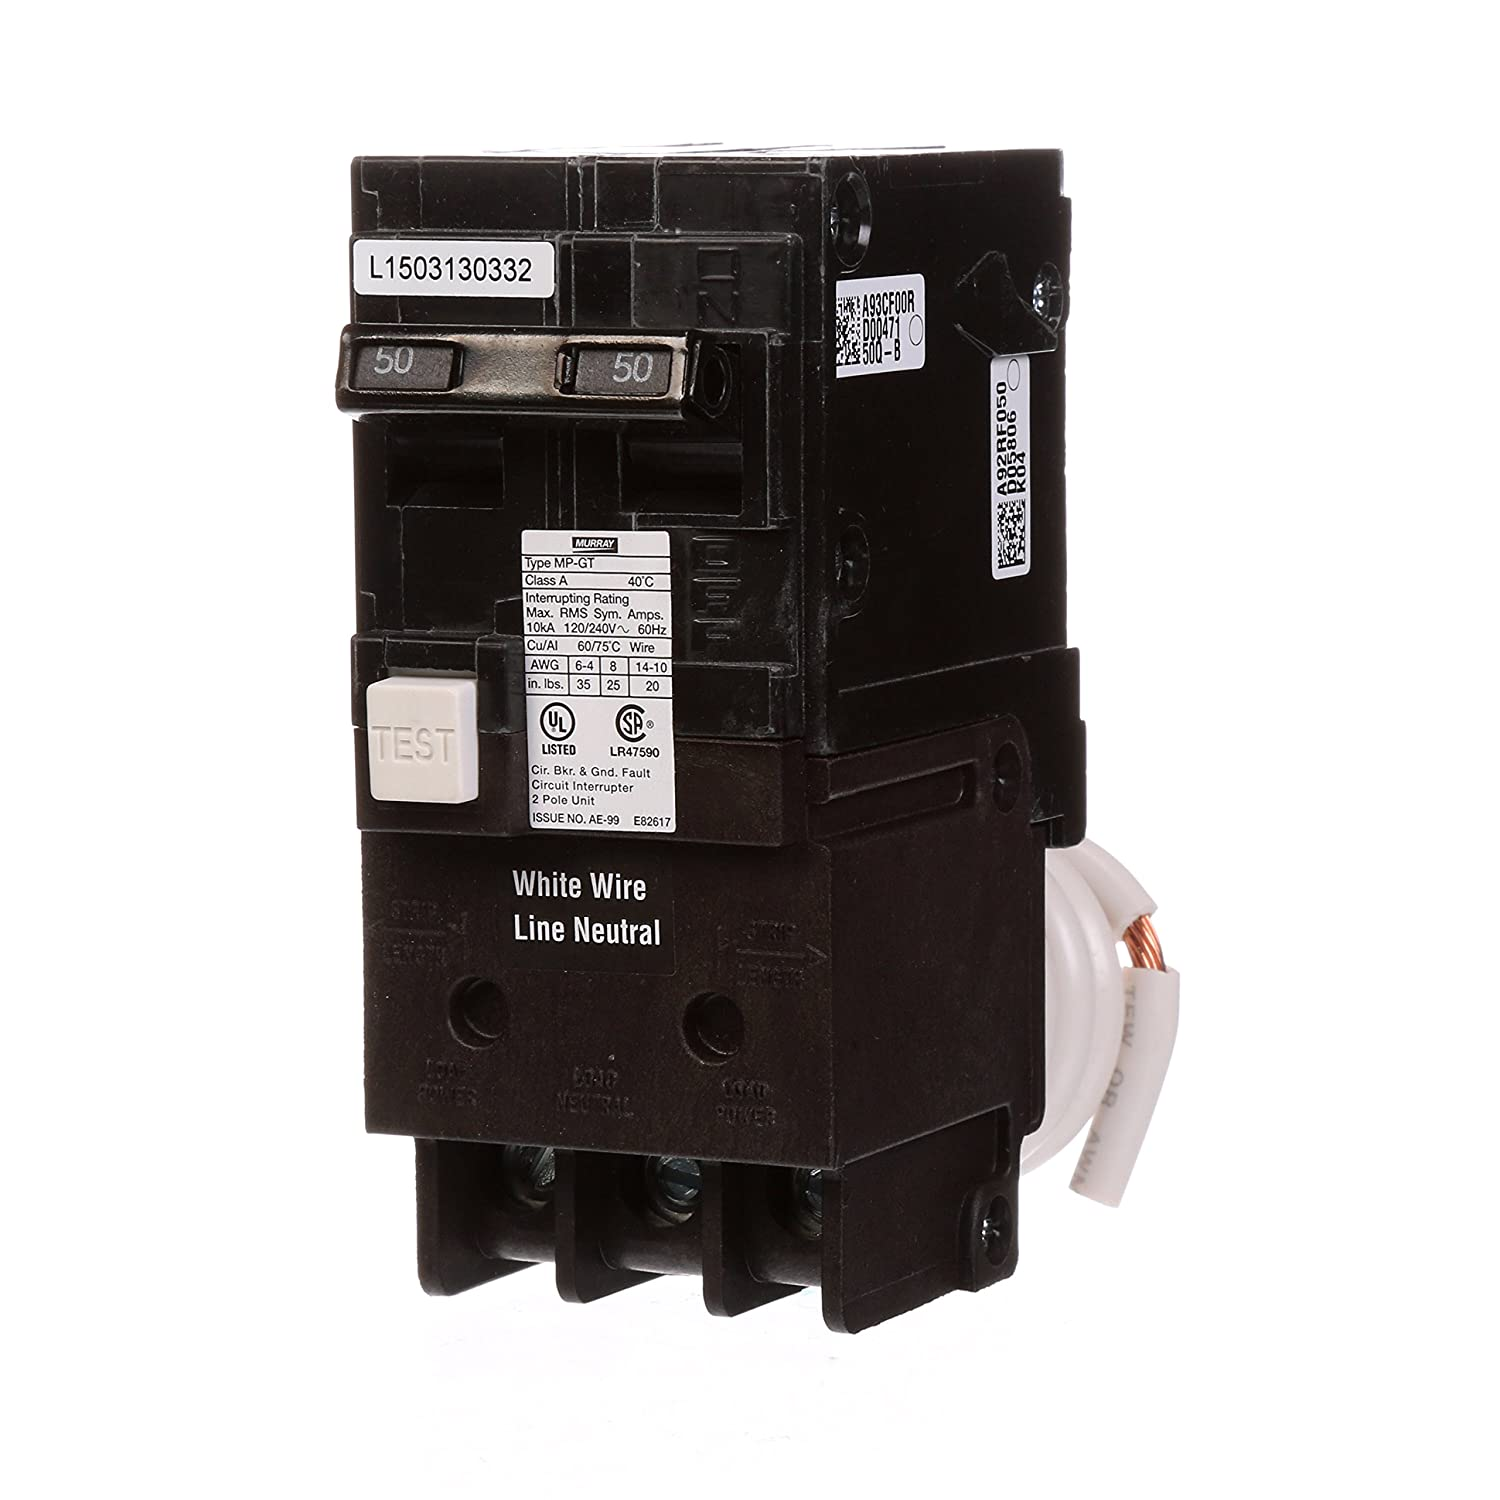 Murray MP250GFA 50 Amp 2-Pole Gfci Circuit Breaker with Self Test & Lockout Feature Siemens